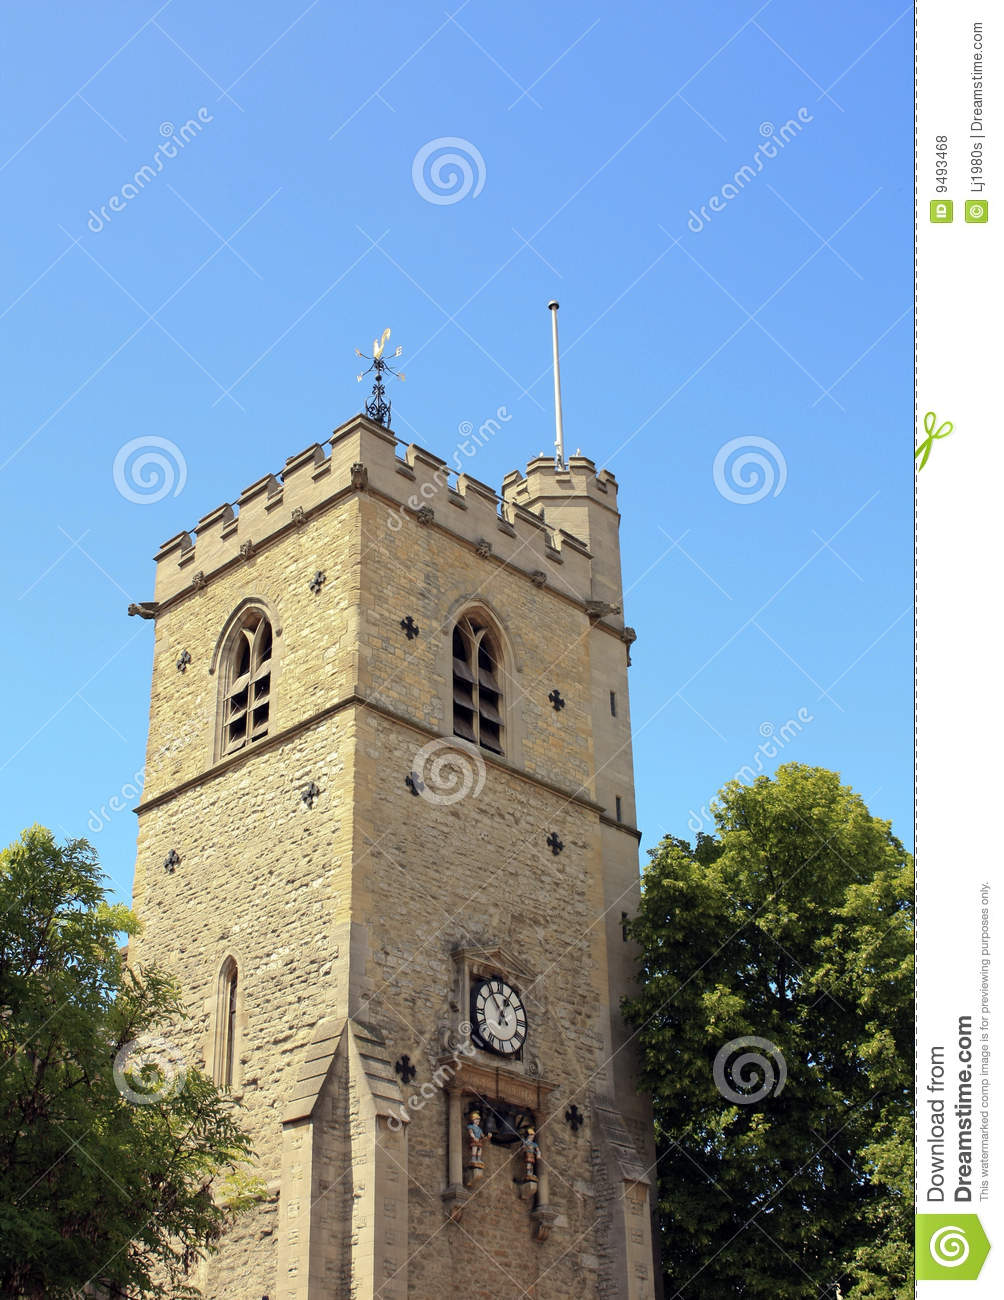 Carfax Tower, Oxford, Uk Stock Photo. Image Of Knowledge